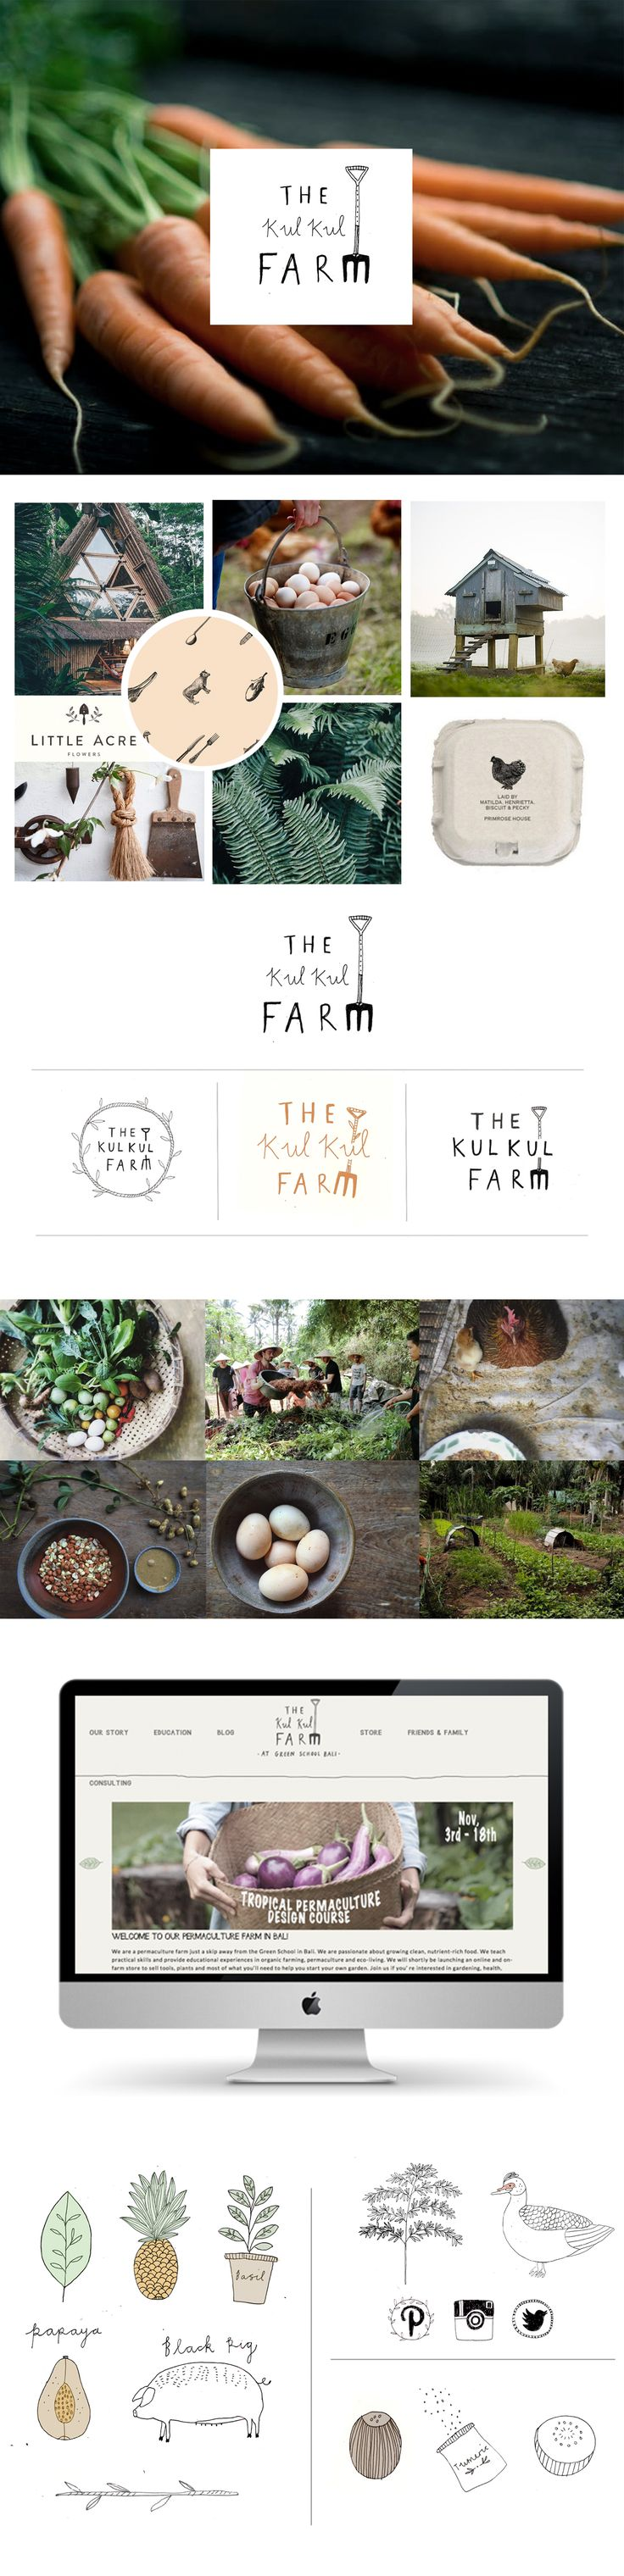 Branding and website by Ryn Frank www.rynfrankdesign.co.uk